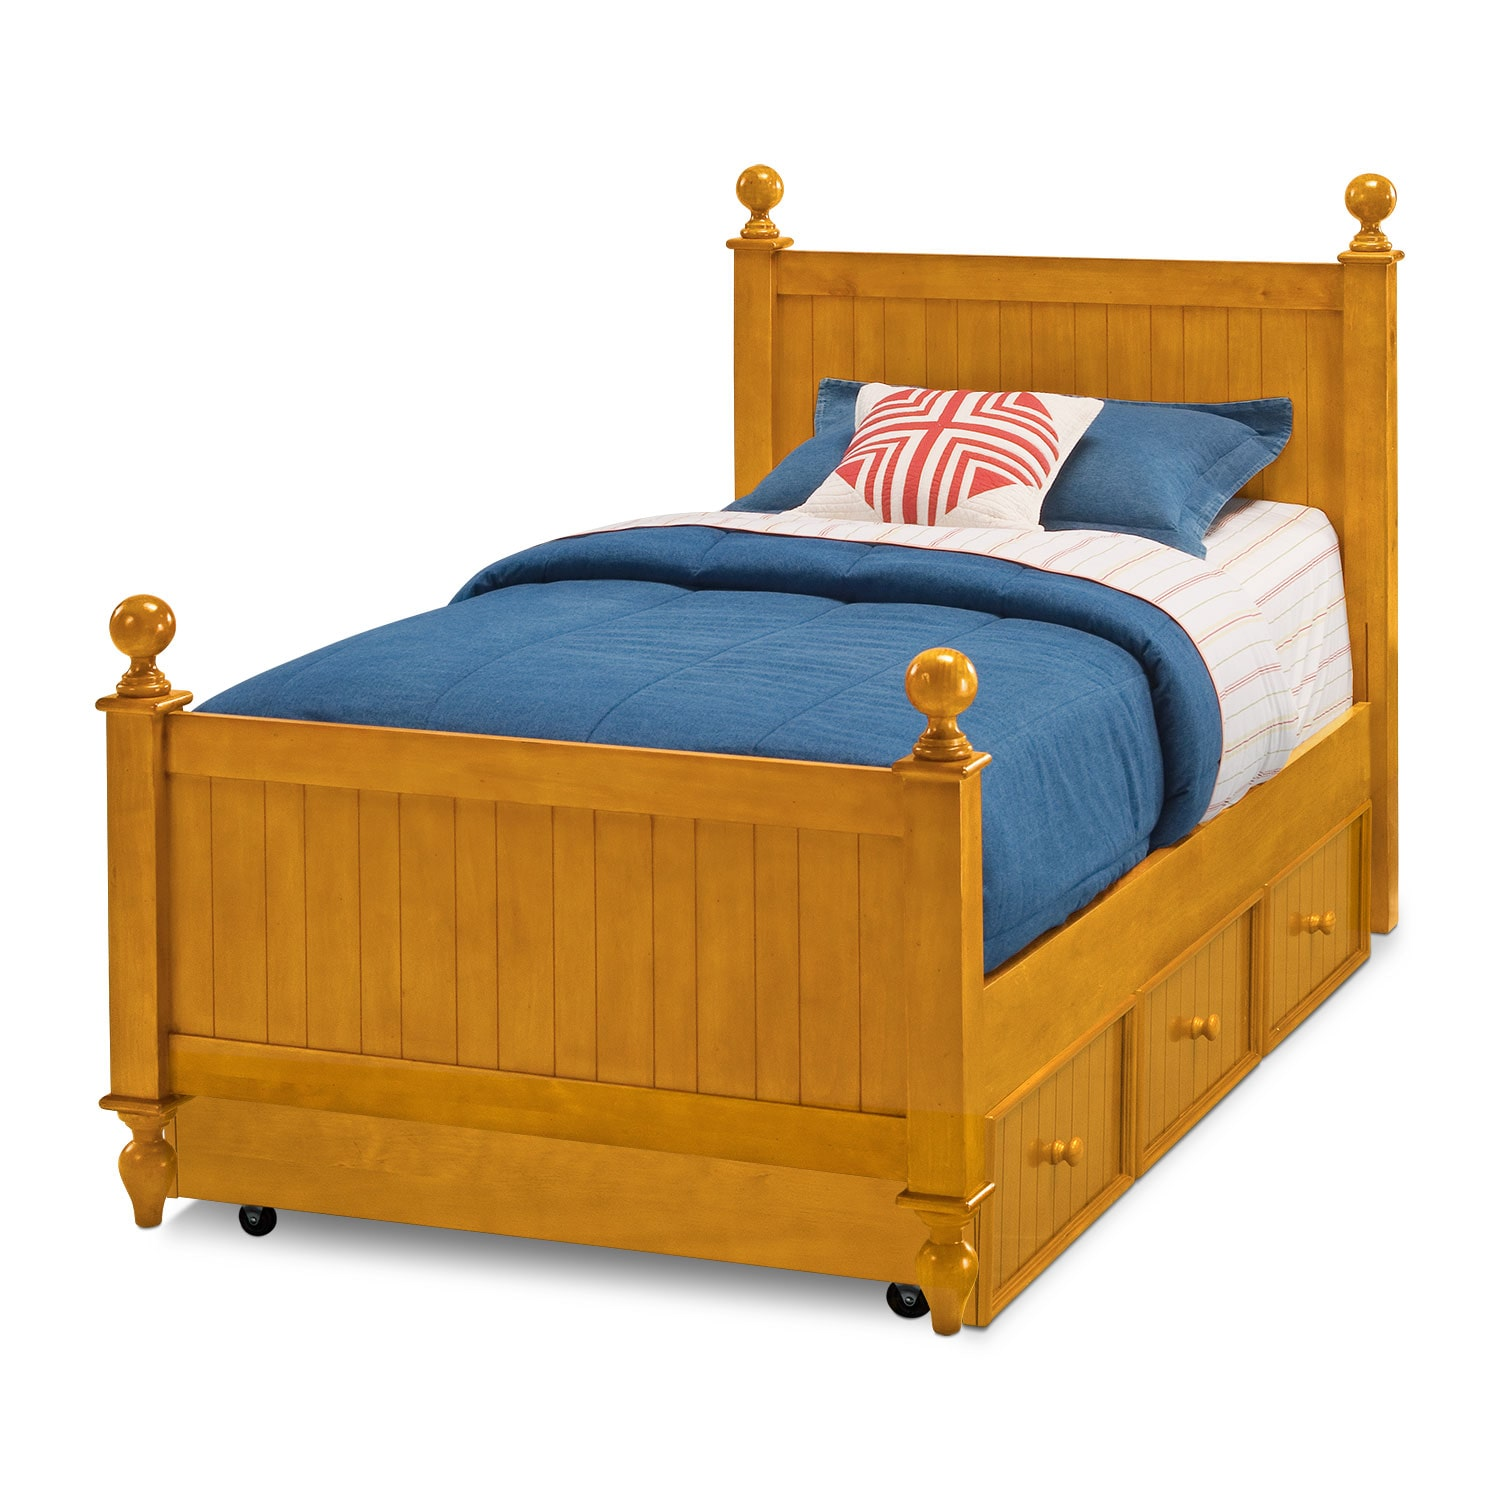 Shop Twin Beds Value City Furniture and Mattresses